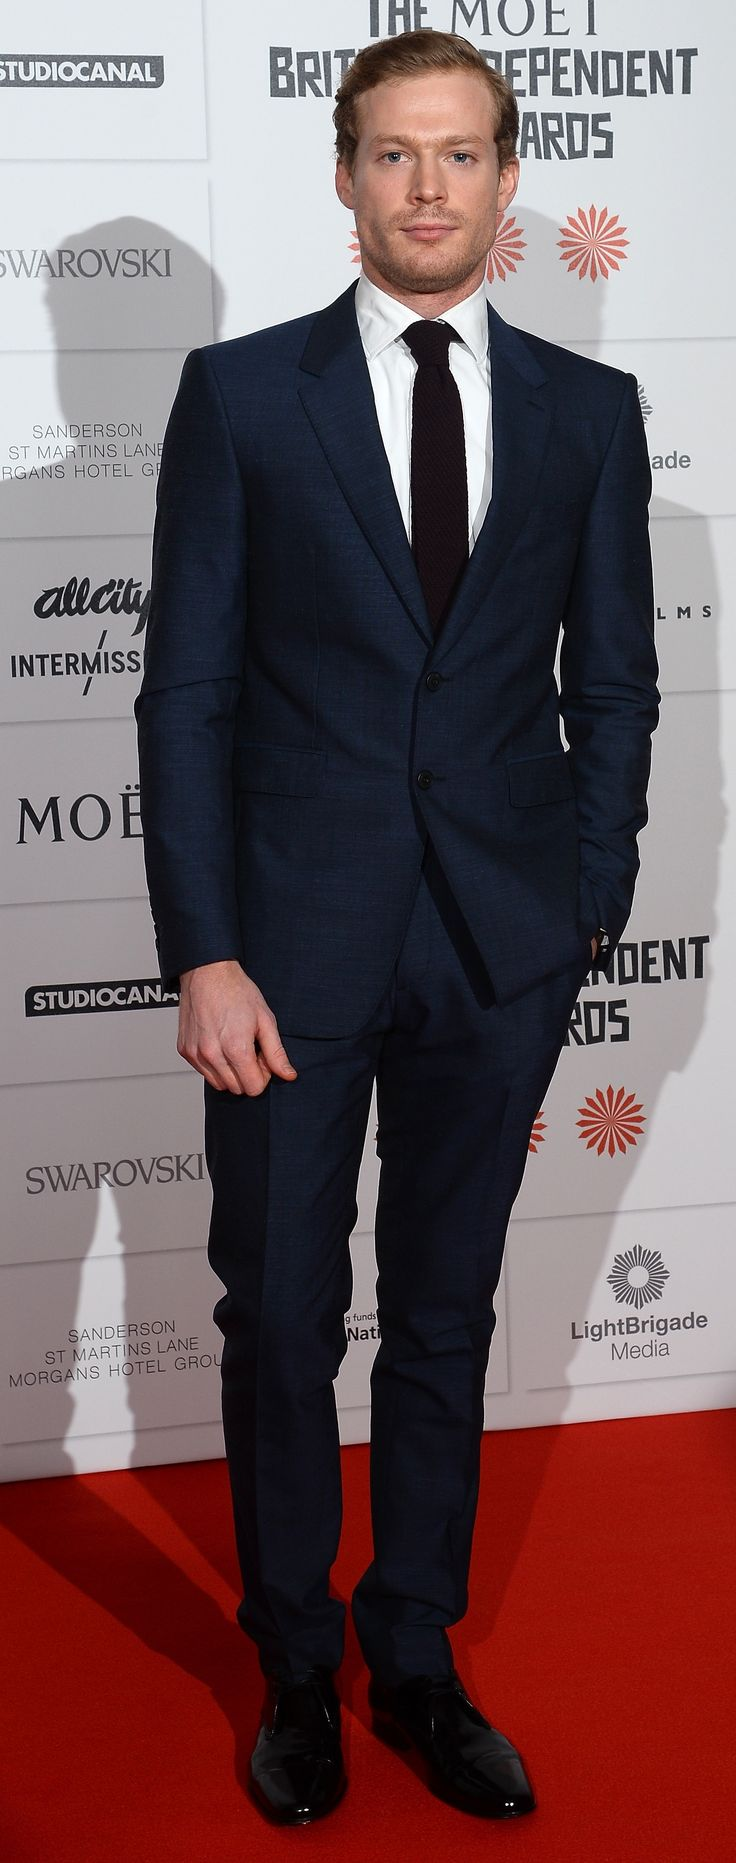 Australian actor Sam Reid wearing Burberry tailoring to attend the British Independent Film Awards in London